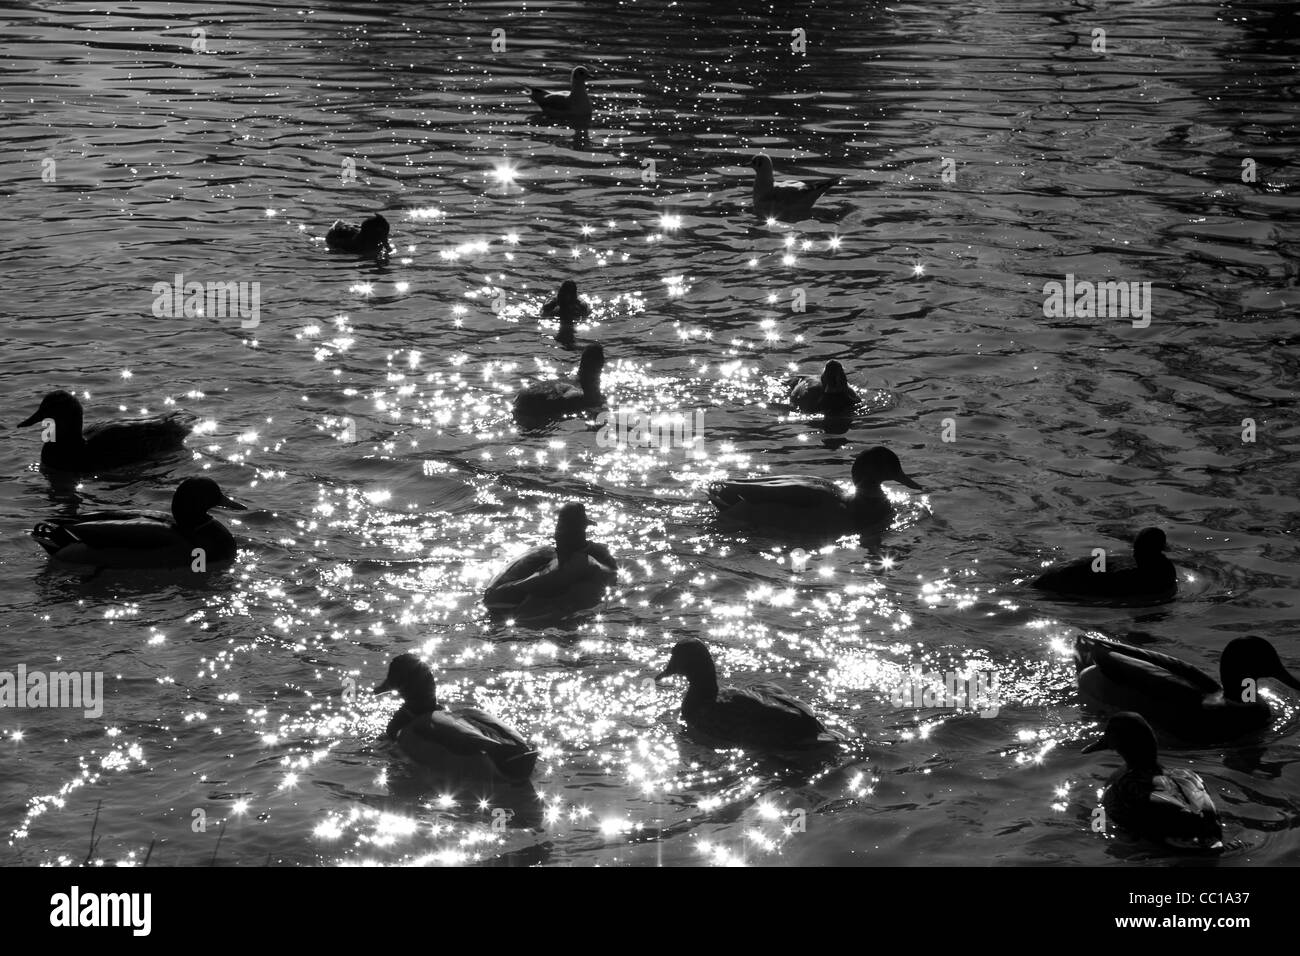 Black and white horizontal silhouette image of many ducks floating on the water, the sparkling light reflecting - Stock Image